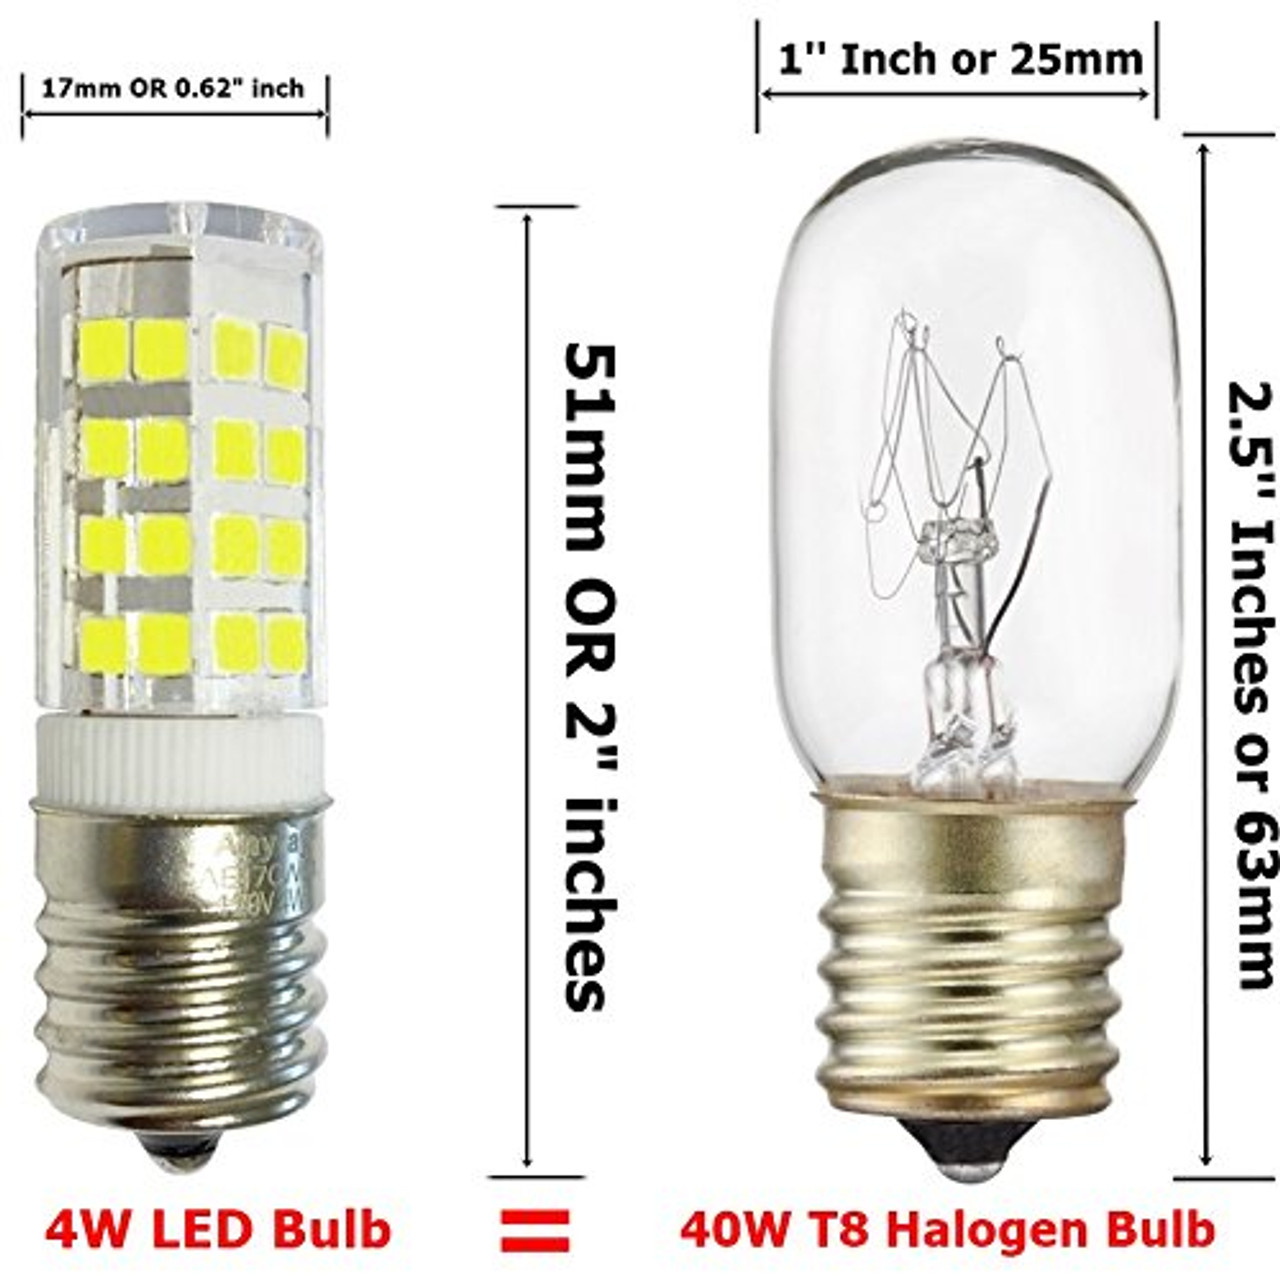 3 bulbs e17 led bulb for microwave oven freezer under microwave stove light 40w equival cool white 6000k